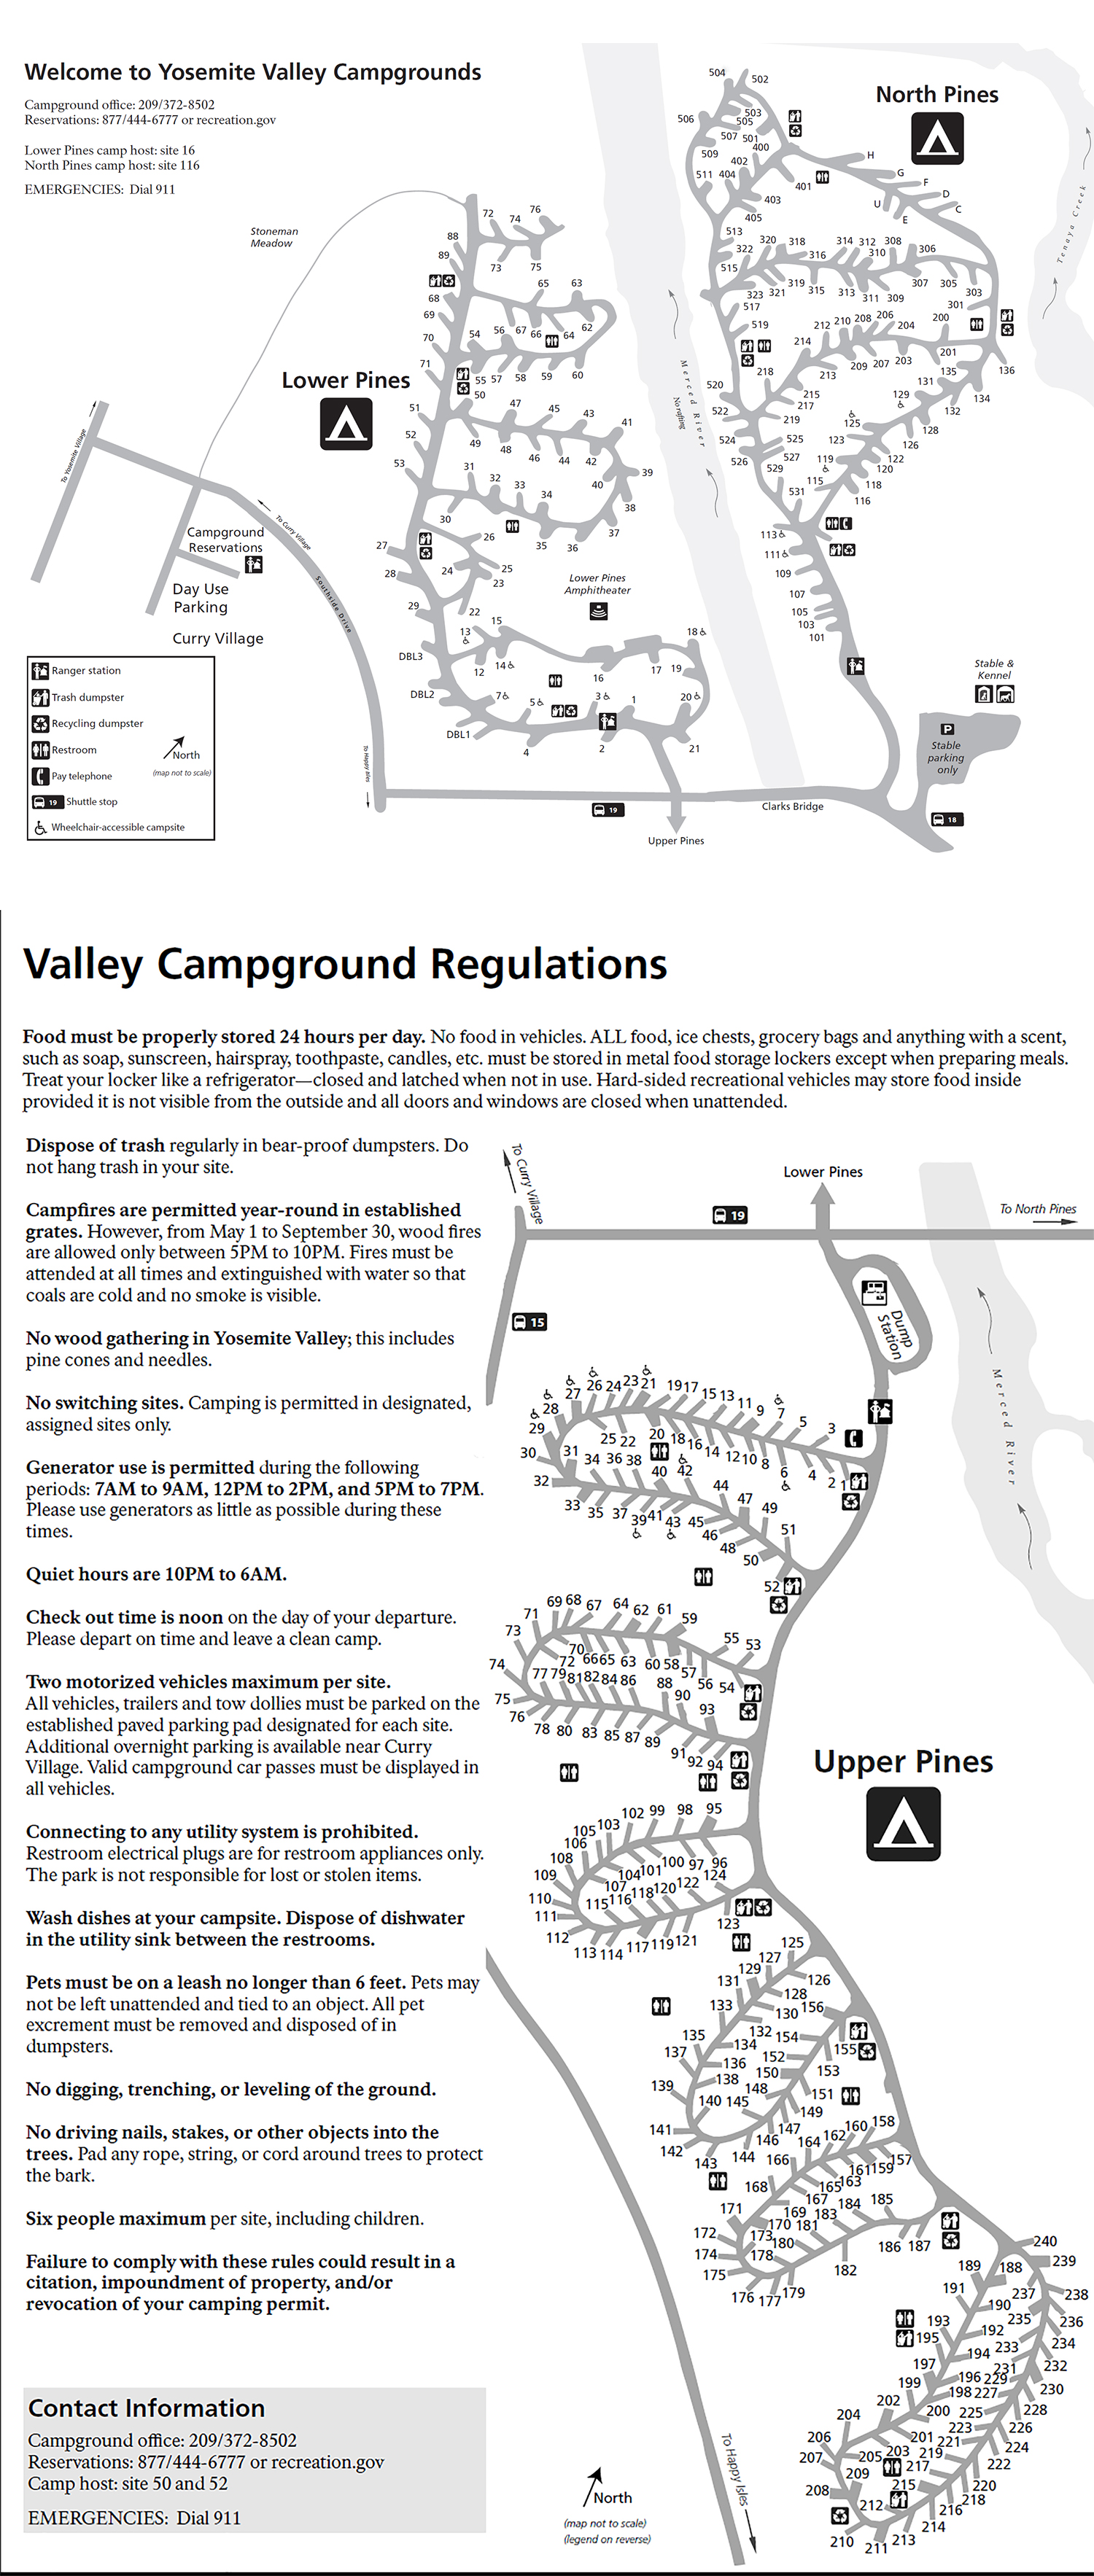 North Pines Campground Map Pines Campgrounds   Yosemite National Park (U.S. National Park